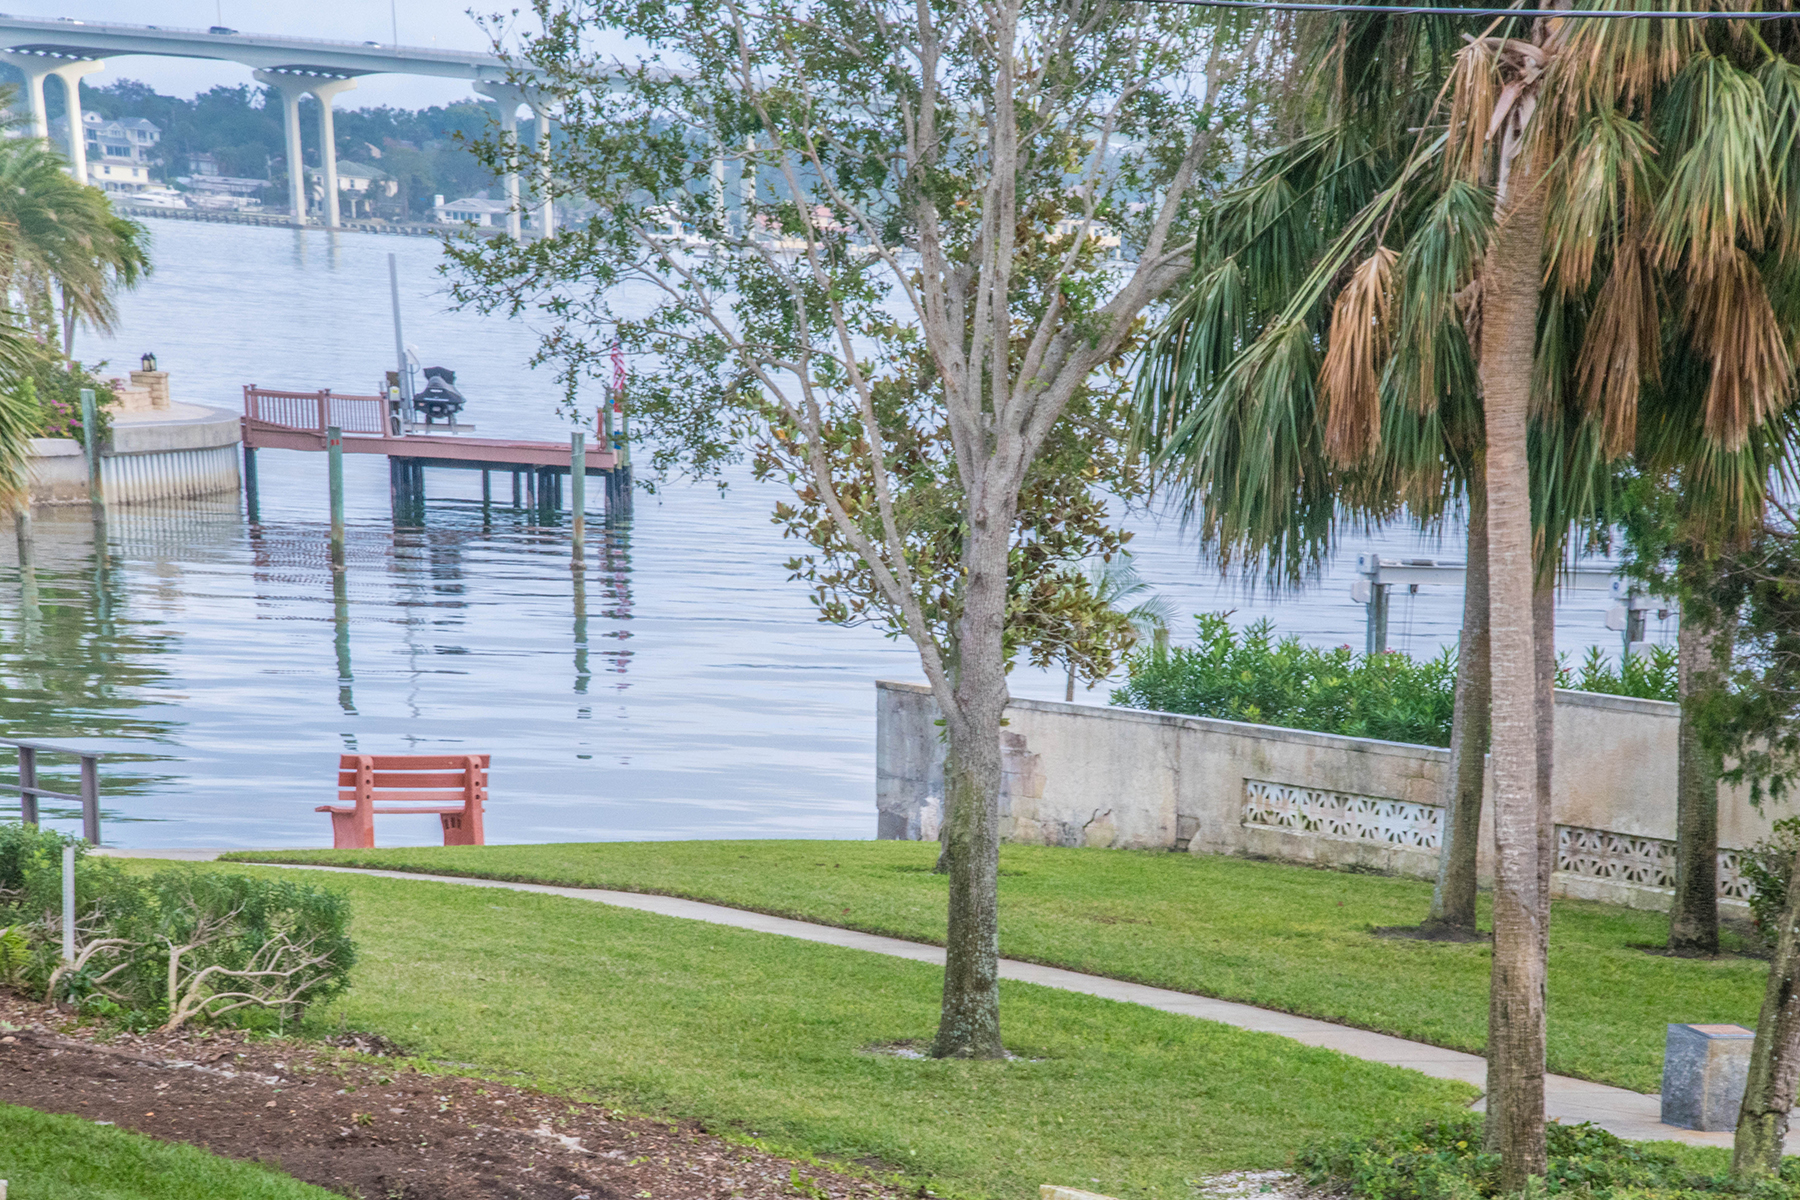 Additional photo for property listing at BELLEAIR BEACH 111  20th St,  Belleair Beach, Florida 33786 United States